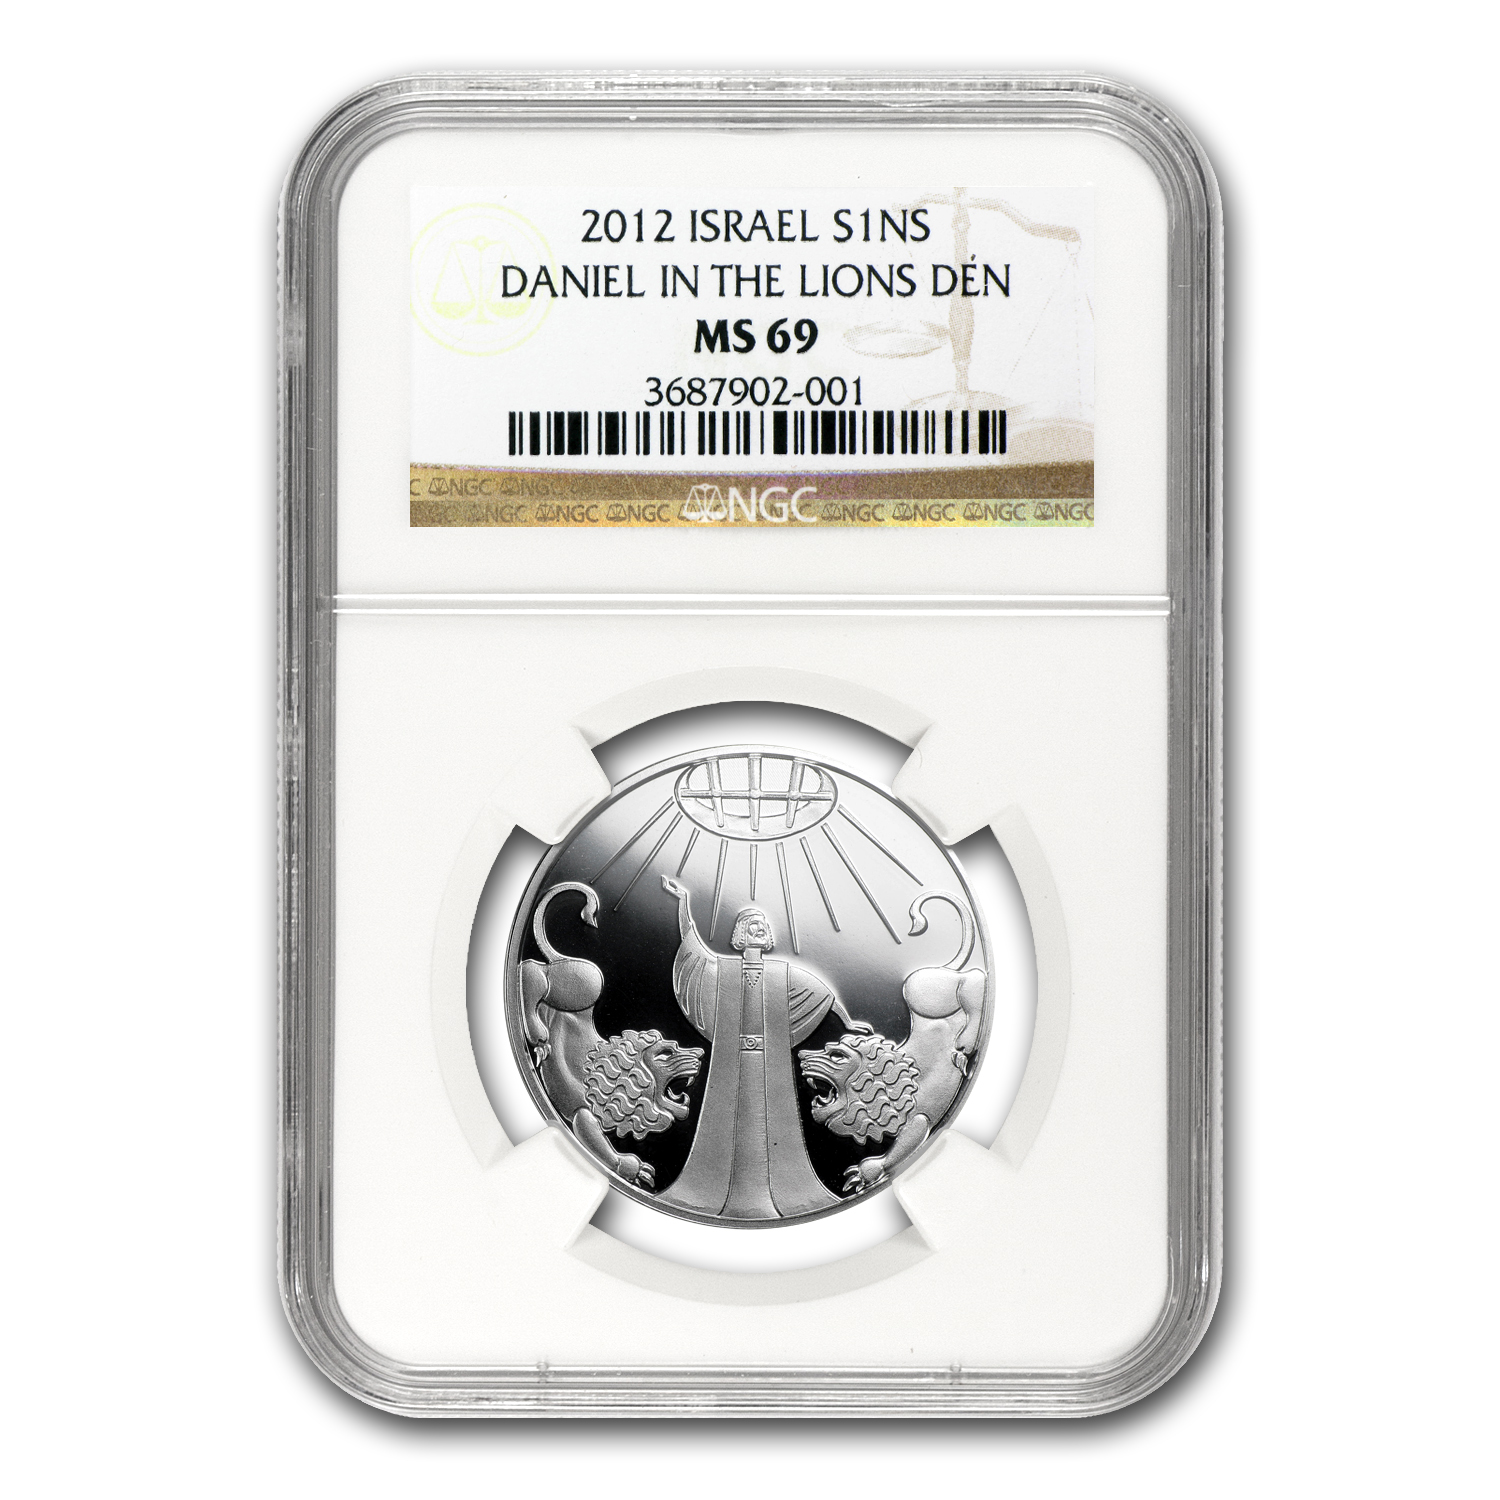 2012 Israel Silver 1 NIS Daniel in the Lion's Den MS-69 NGC